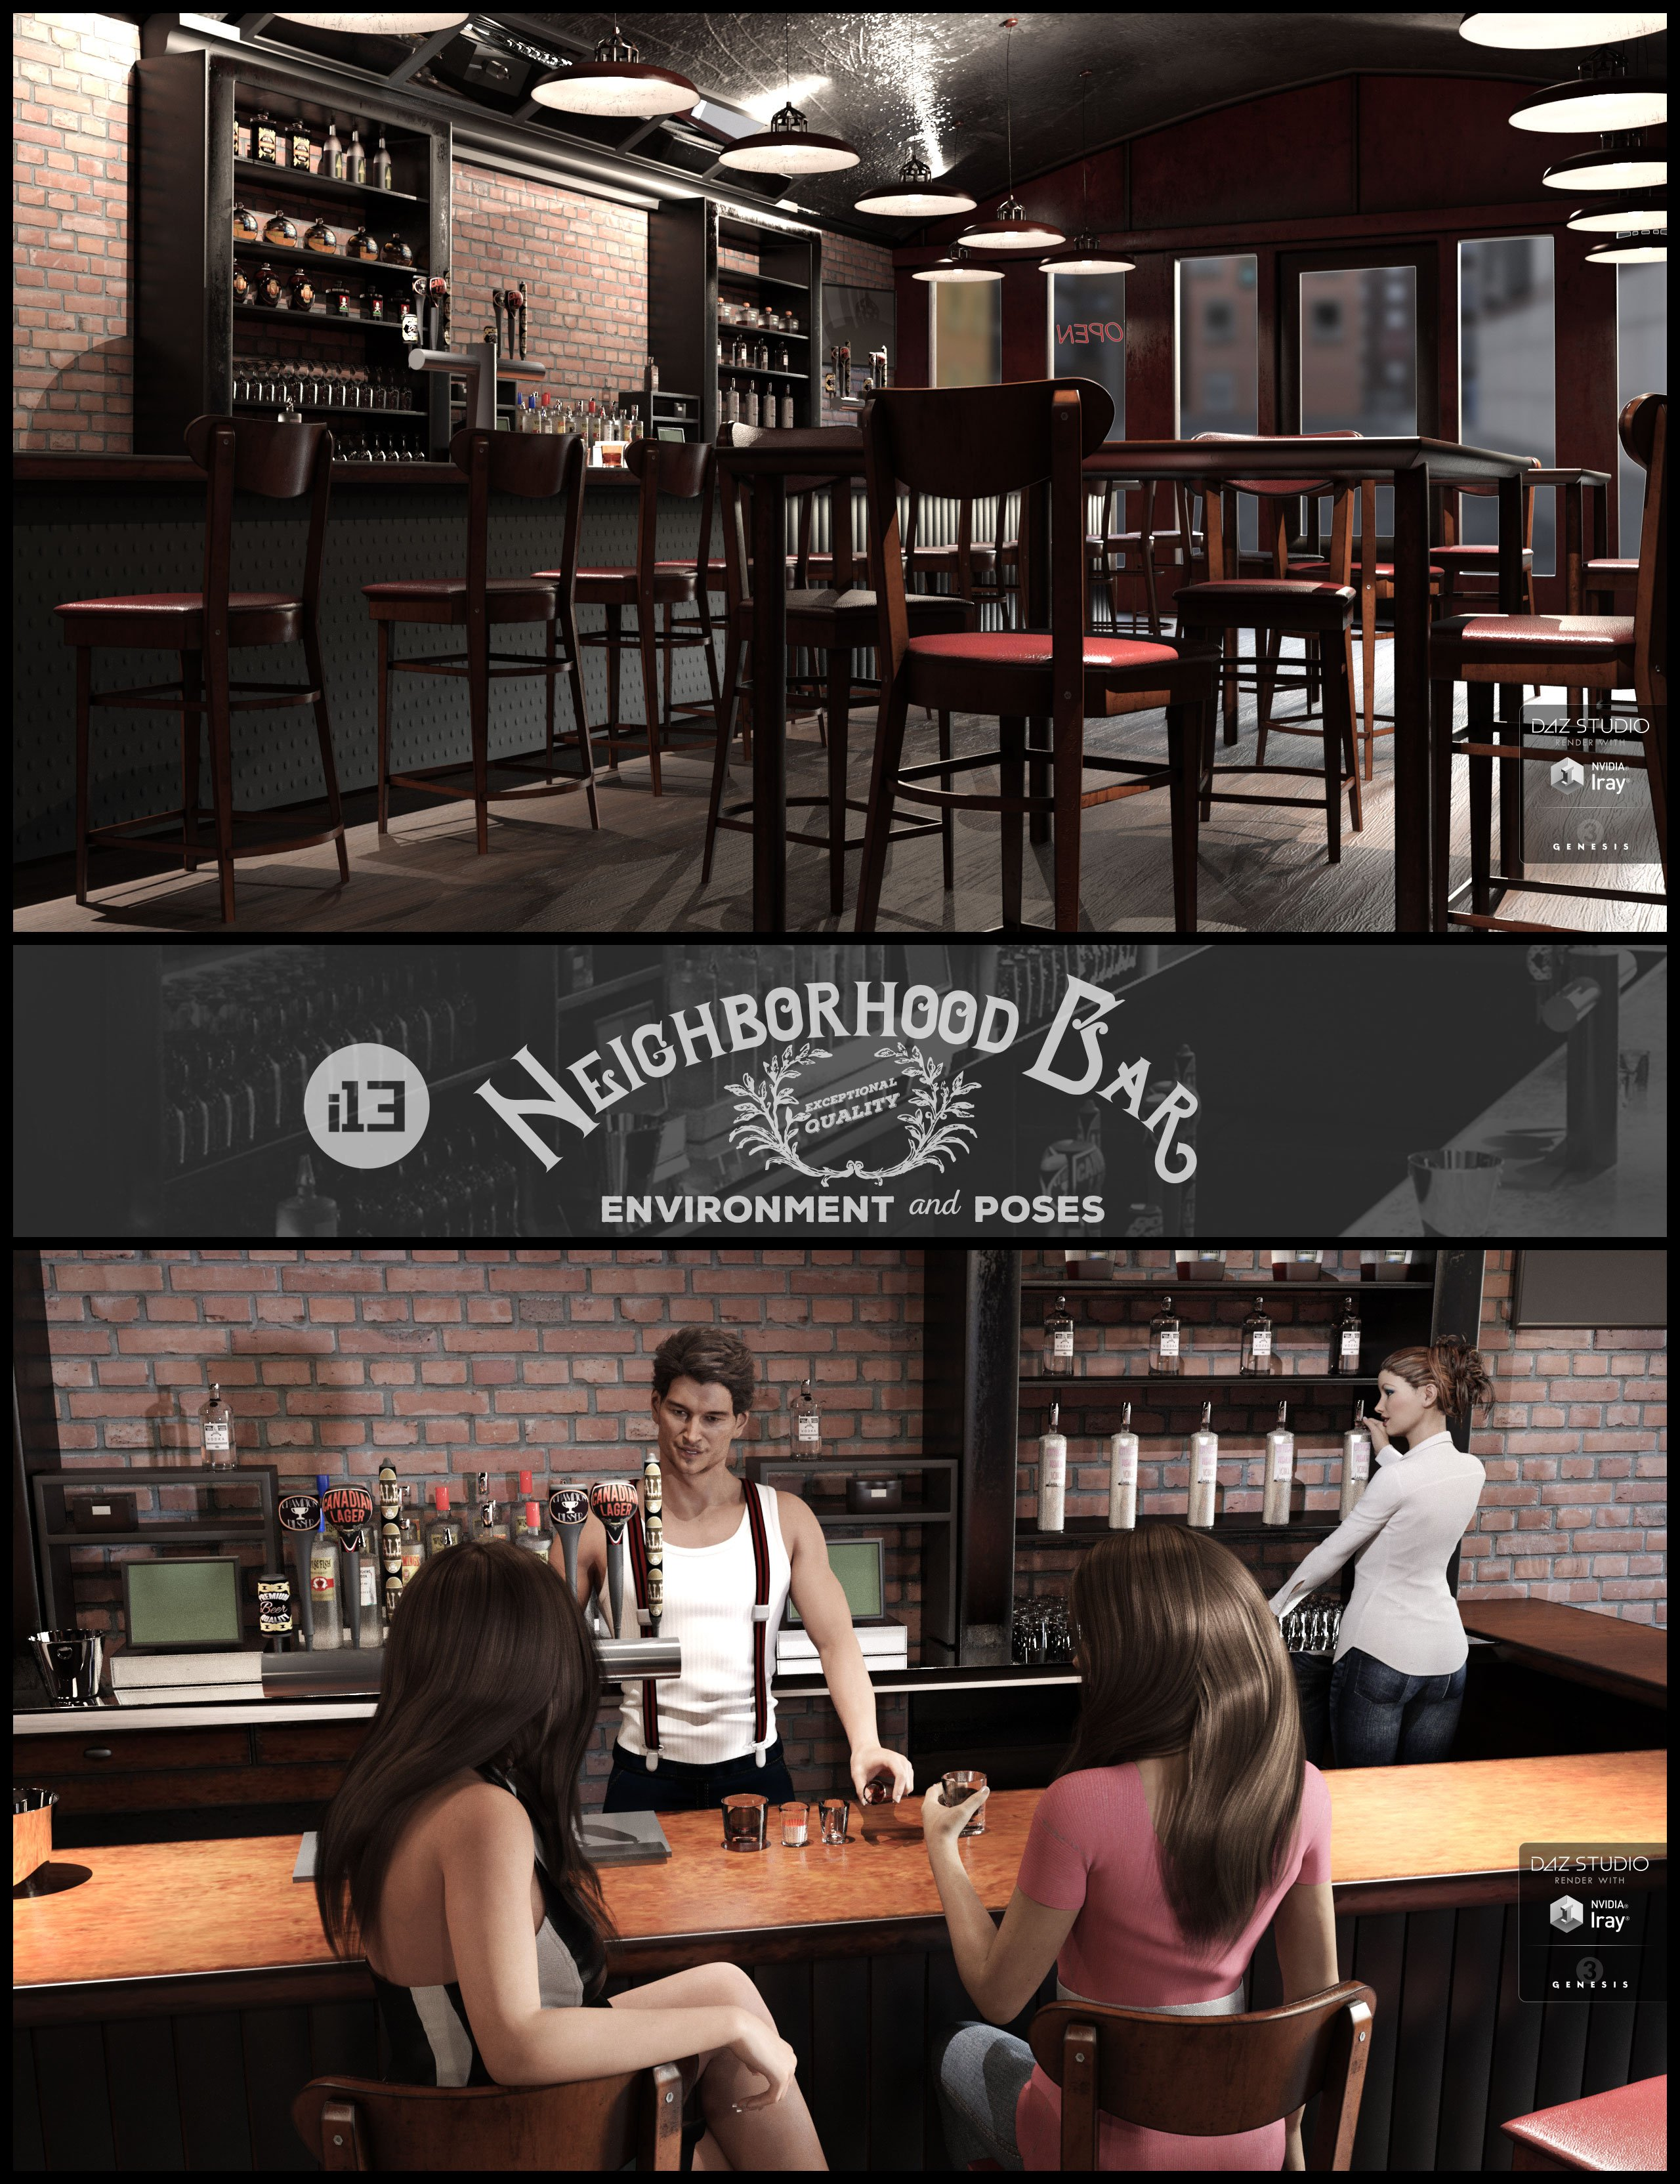 i13 Neighborhood Bar Environment with Poses by: ironman13, 3D Models by Daz 3D